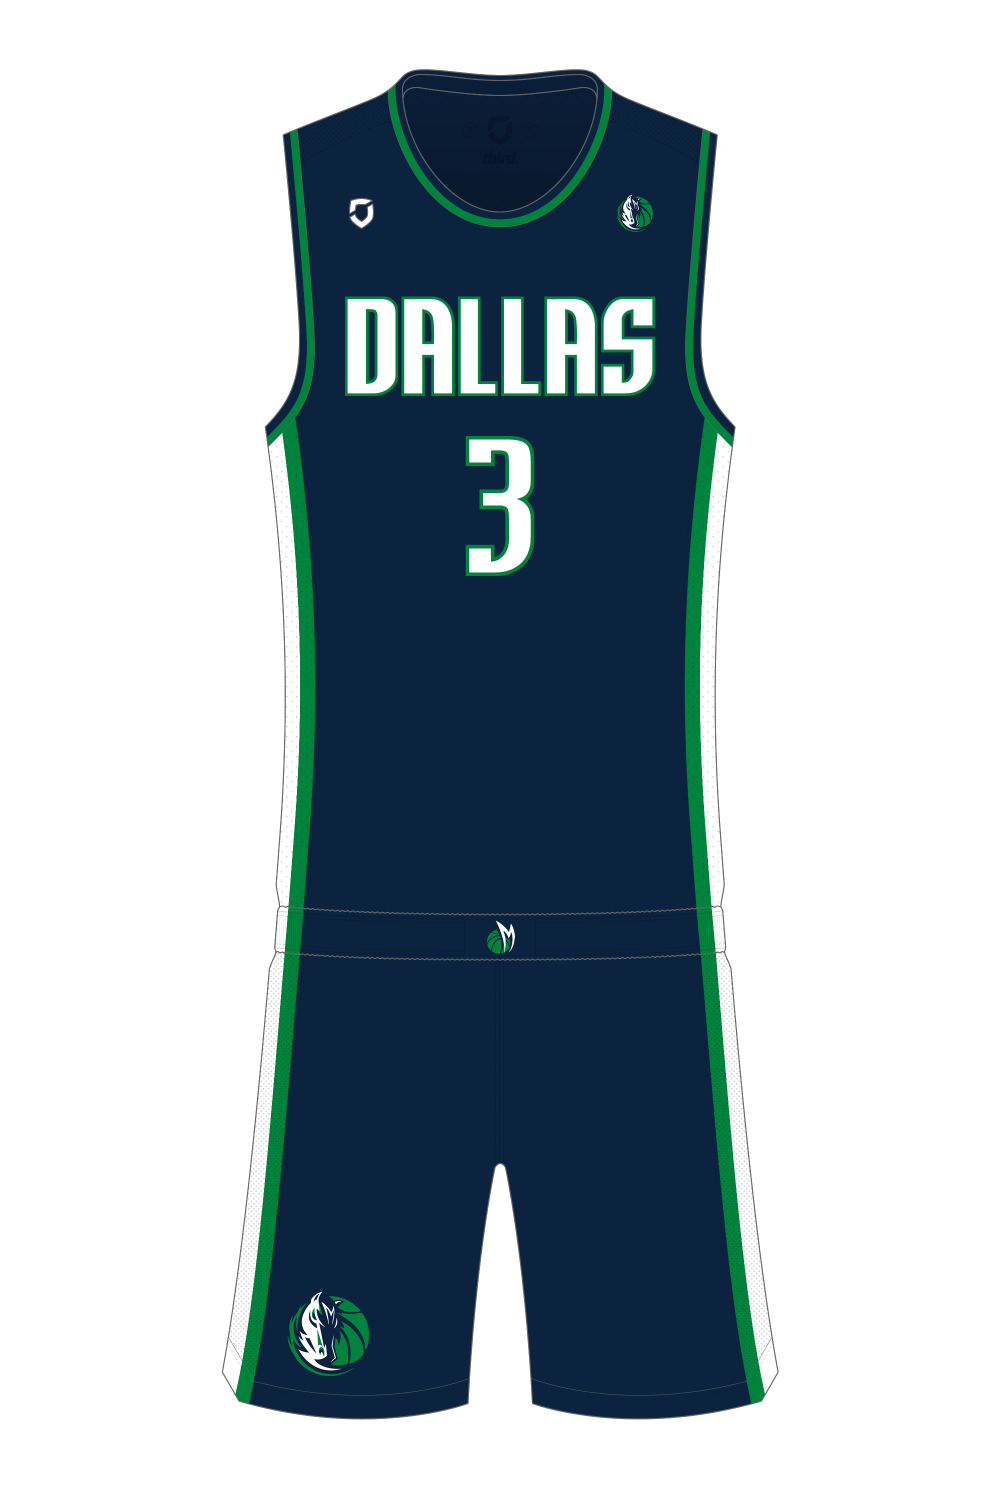 Dallas Mavericks Away